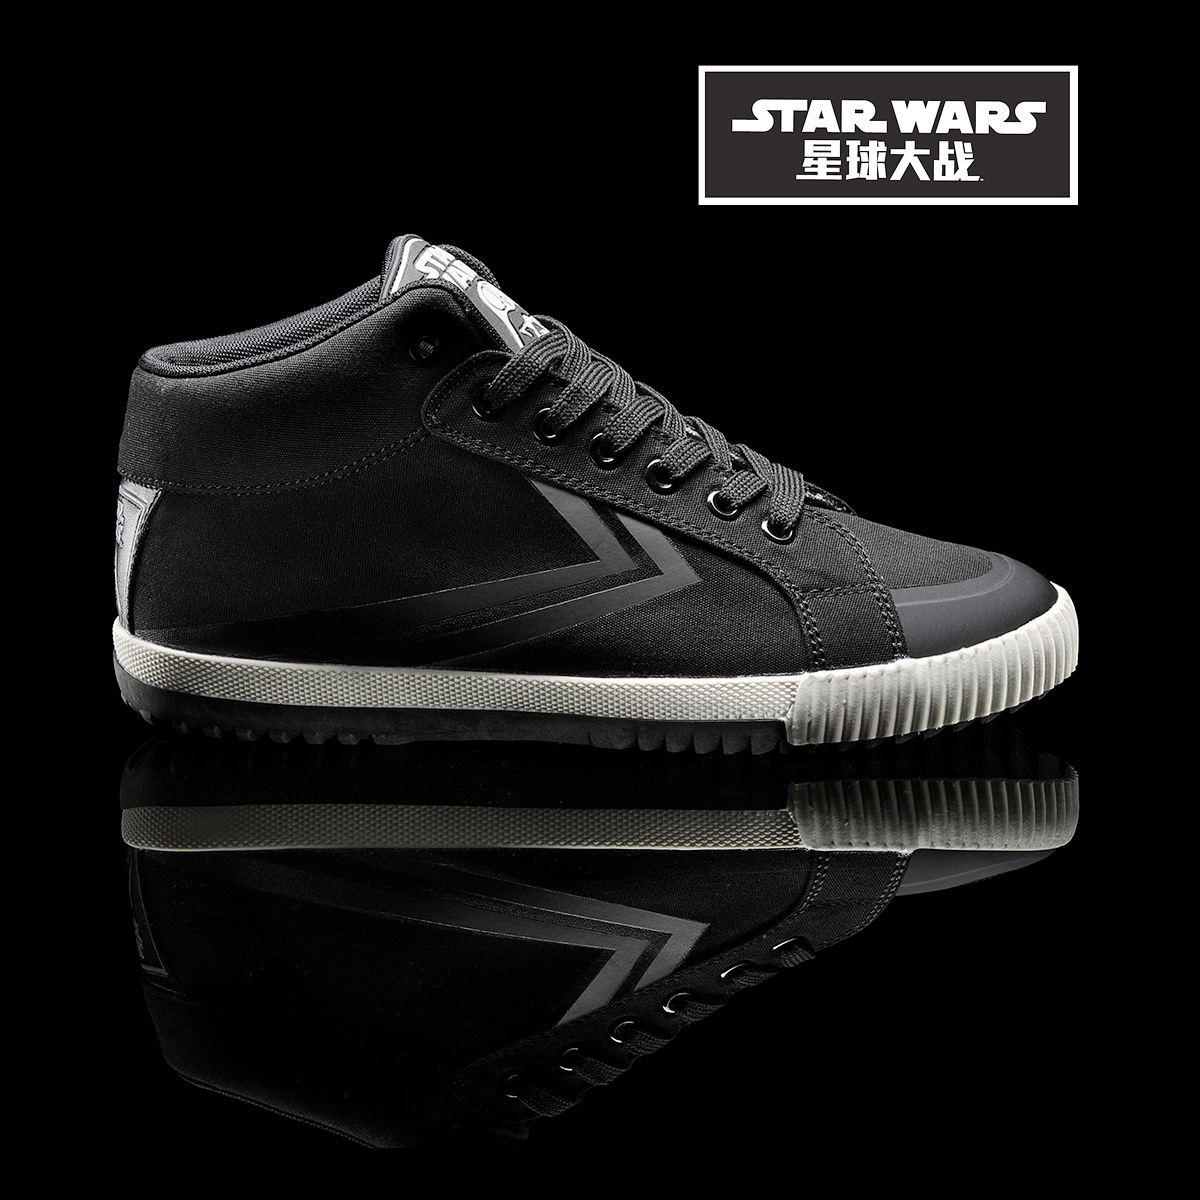 Keyconcept New Feiyue XStarWars schuhe Stil Unisex Turnschuhe kampfkunst Taichi beliebt und komfortabel keyconcept france original feiyue shoes classical kungfu shoes taiji shoes popular